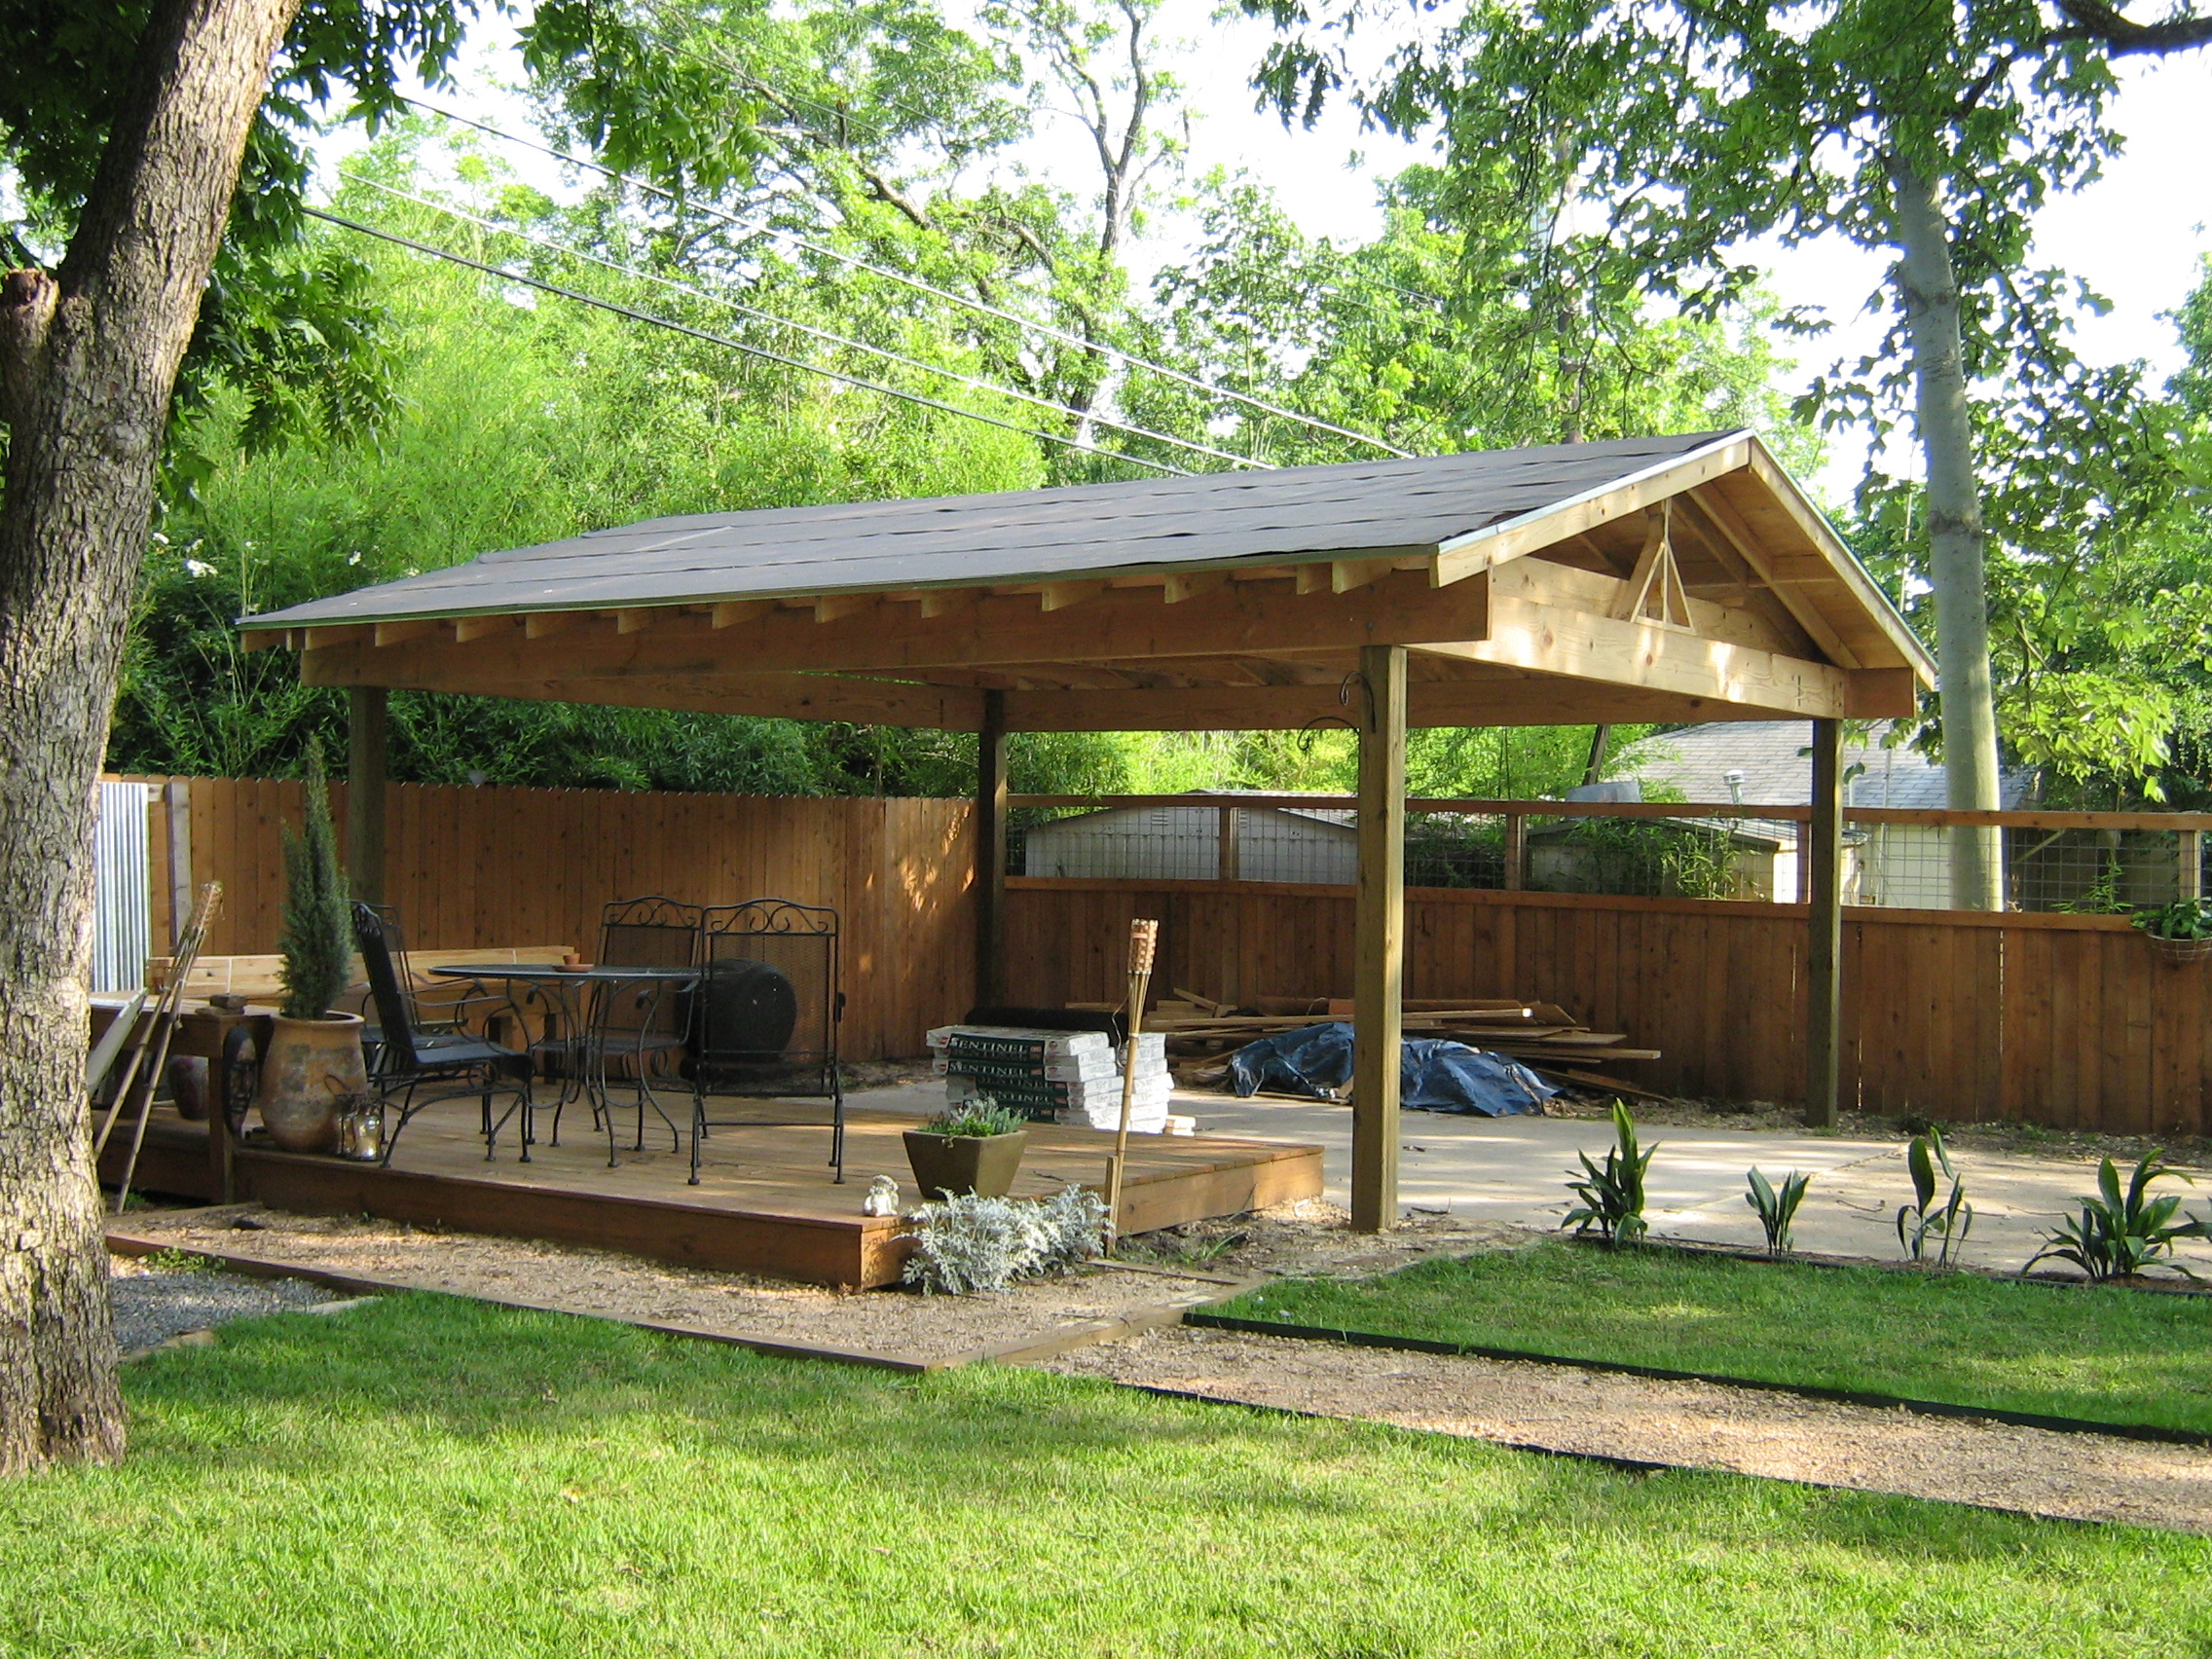 How to build wood carport kits do it yourself plans for Carport blueprints